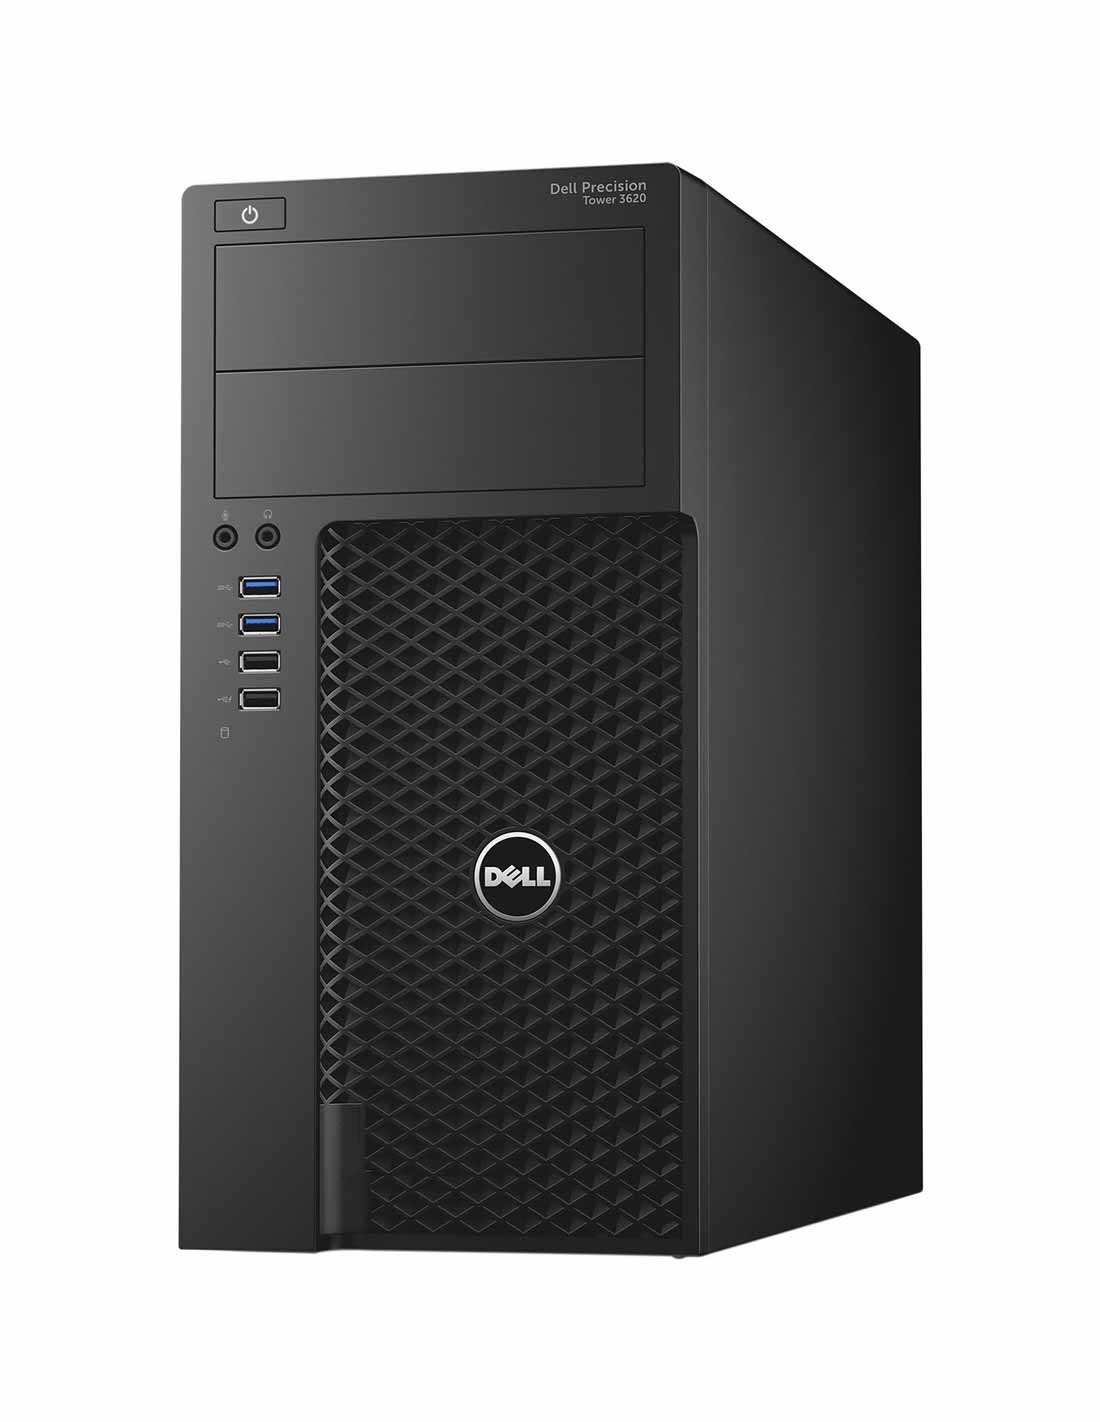 Dell Precision Tower 3620 E3-1240 v5 images and photos in Dubai computer store